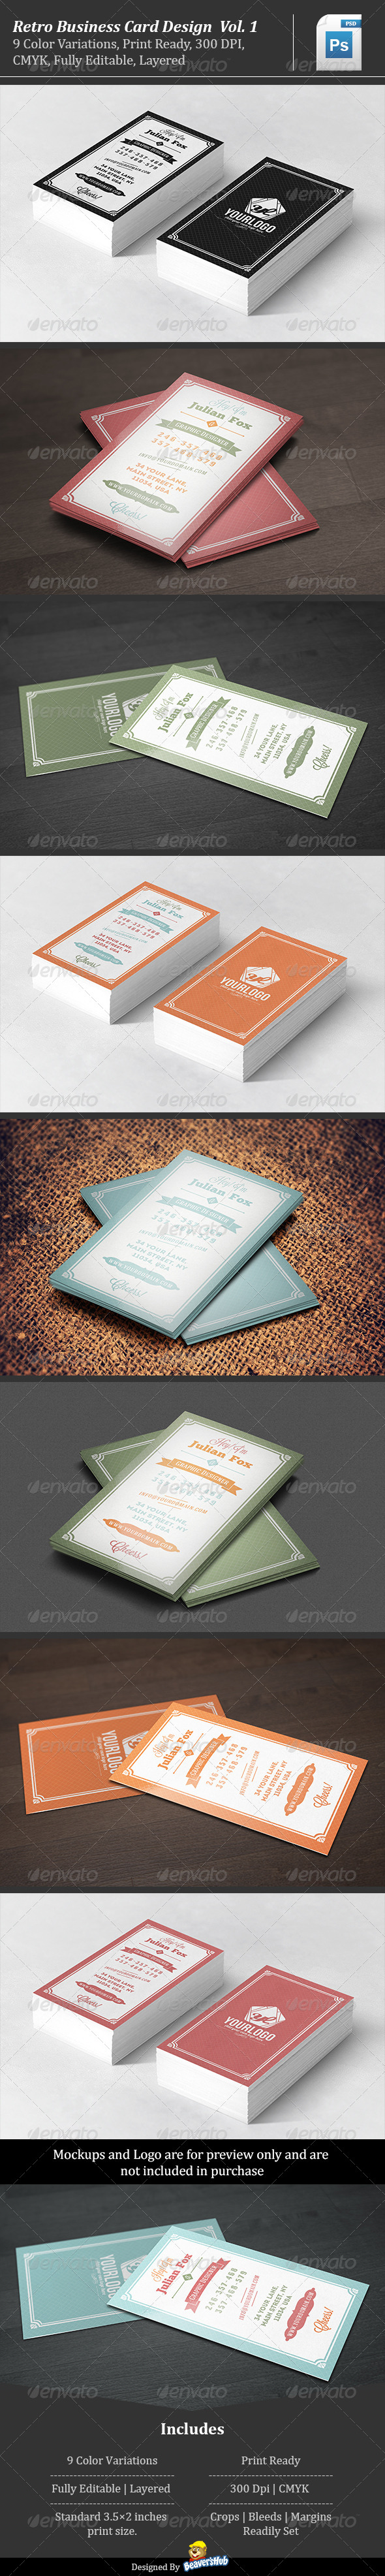 Retro Business Card Design Vol. 1 - Retro/Vintage Business Cards